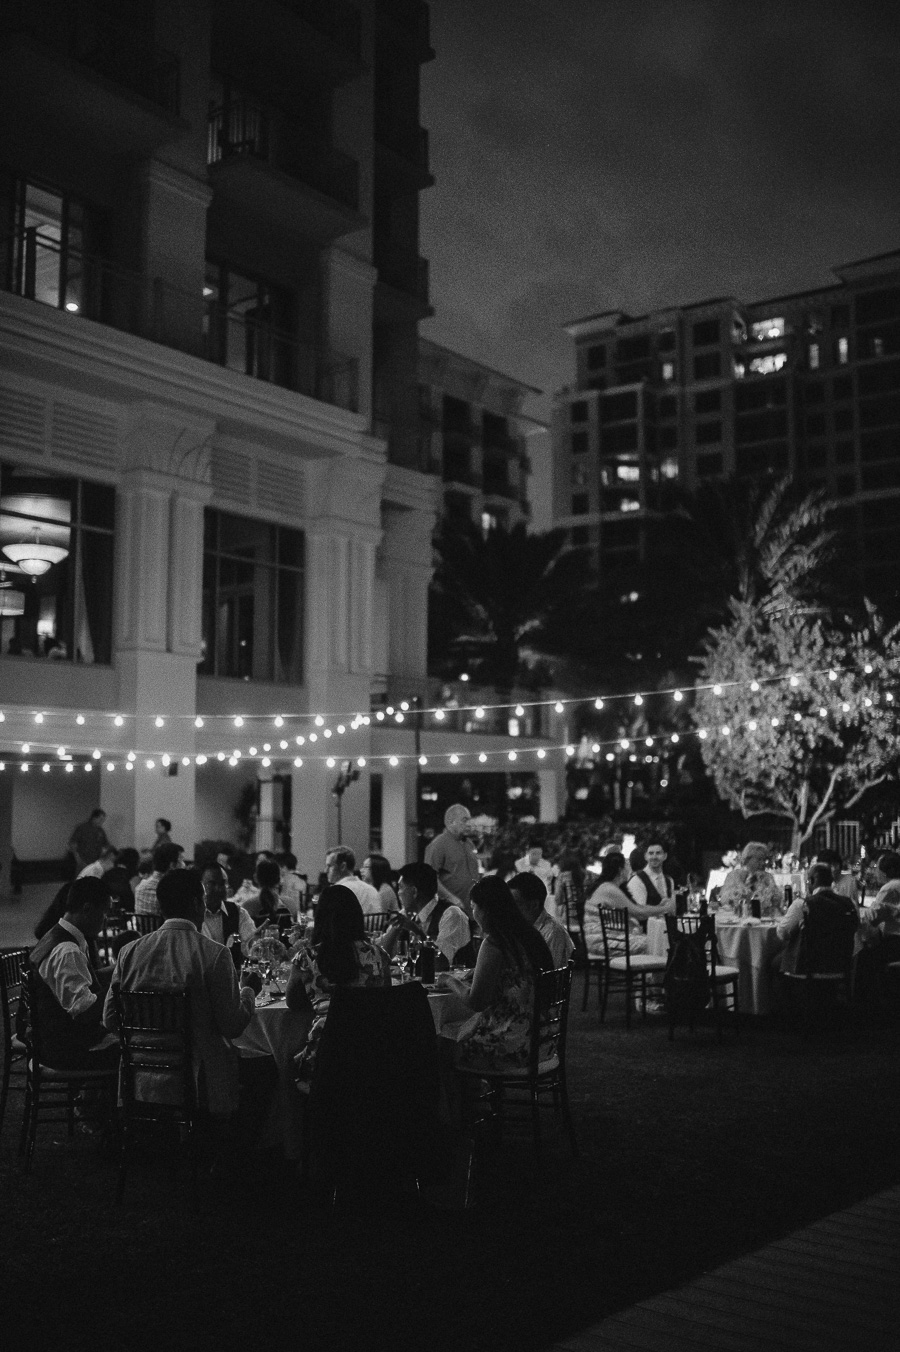 Outdoor Cafe Market Lighting Detail by Nature Coast Entertainment at Clearwater Beach Evening Outdoor Wedding Reception Venue Sandpearl Resort